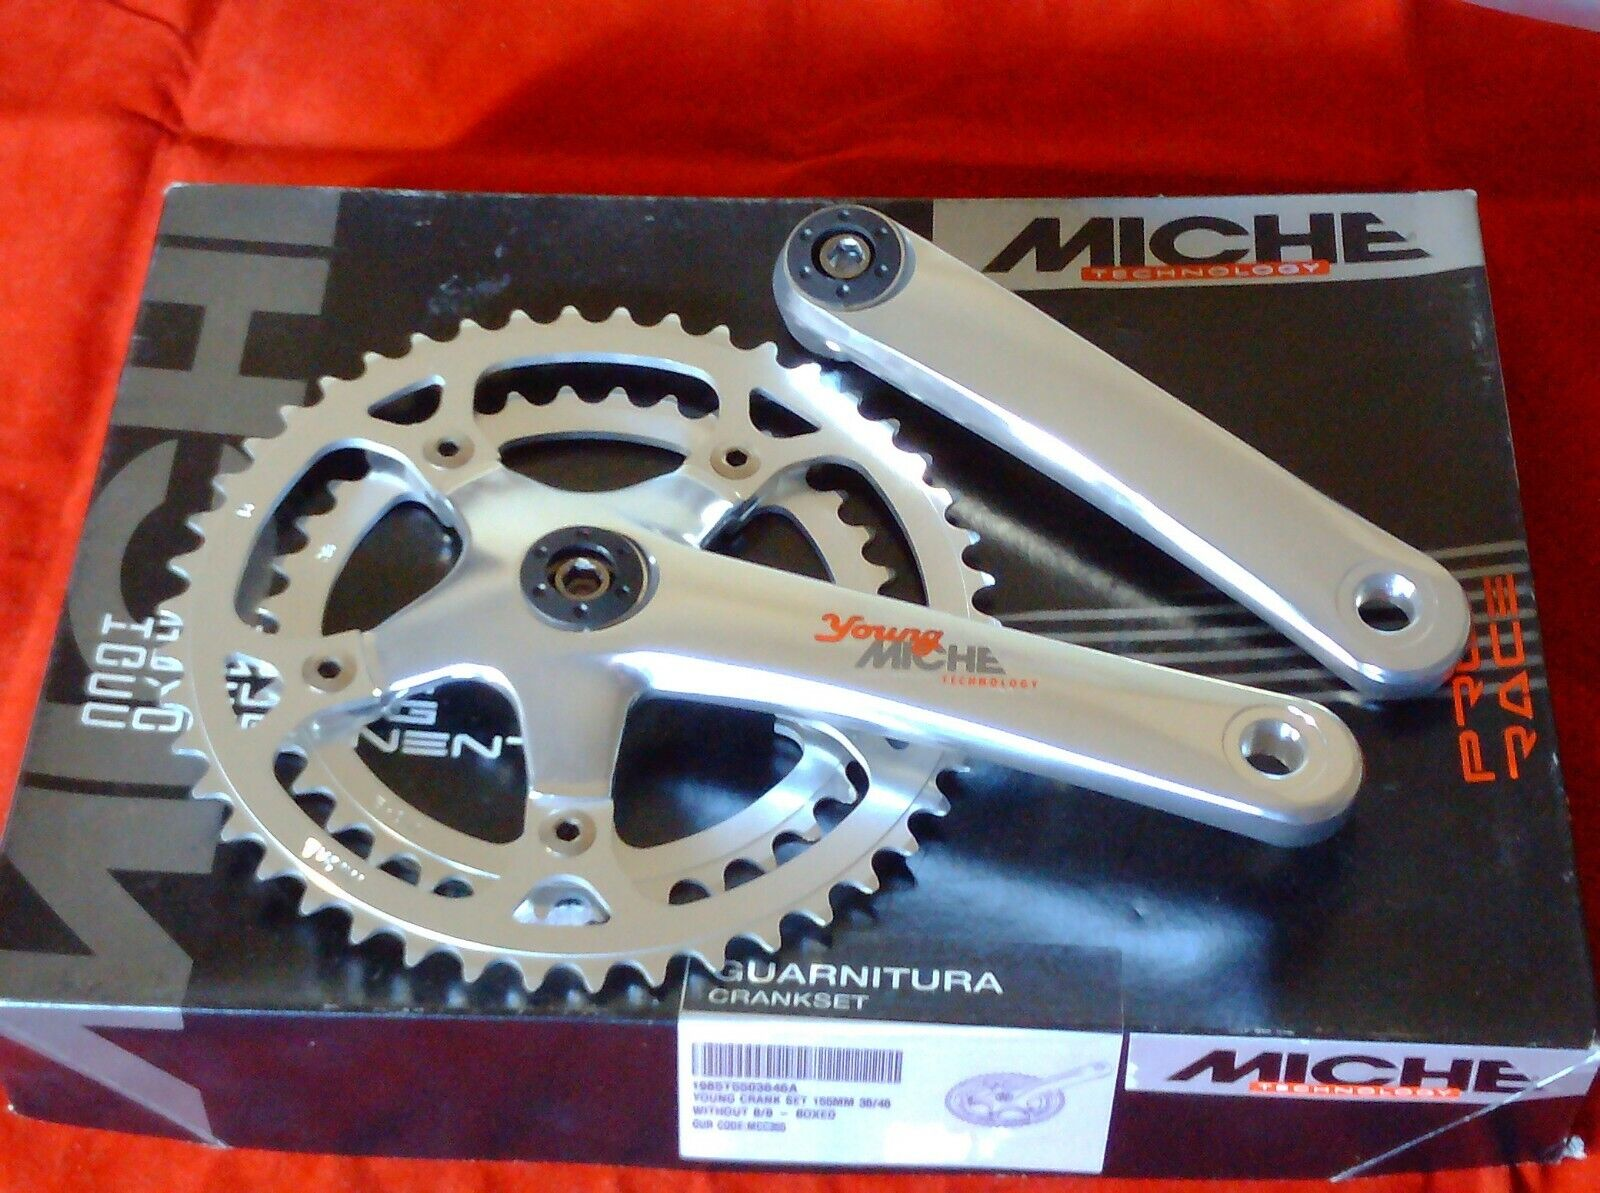 MICHE PRO RACE YOUNG  46 36  DOUBLE   CHAINSET, 155mm CRANKS